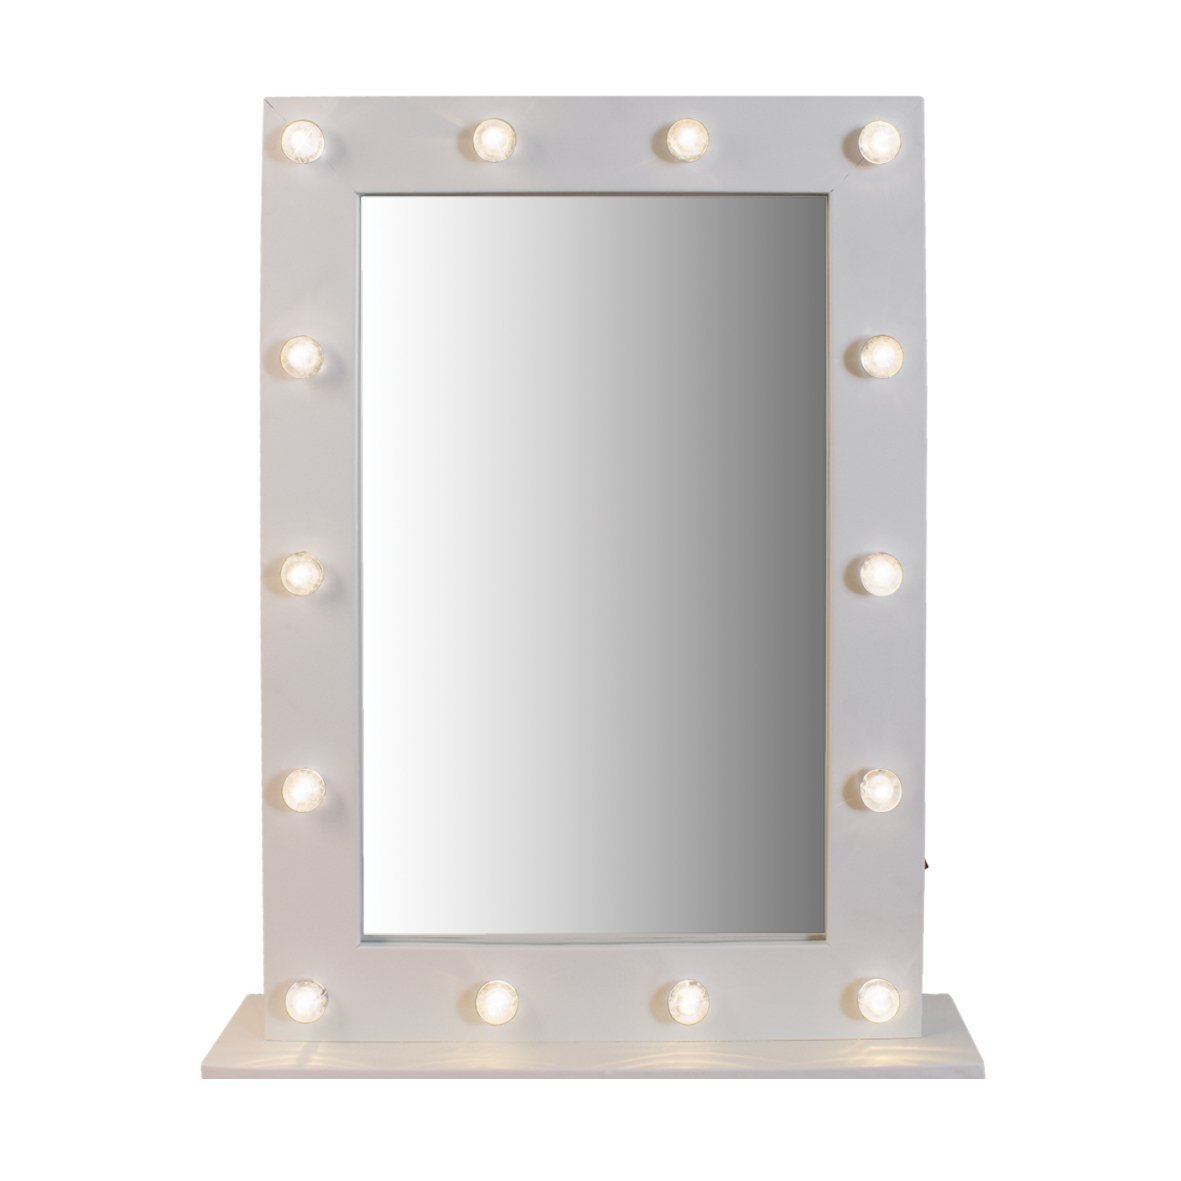 Gadgetzone® White Free Standing style Make Up Mirror Light Up Mirror Illuminated Mirror 14 LED Mirror - Handy White Compact Mirror Bathroom Shaving Mirror Cosmetic Mirror. Battery Operated Dressing Room Mirror Garden Mile®